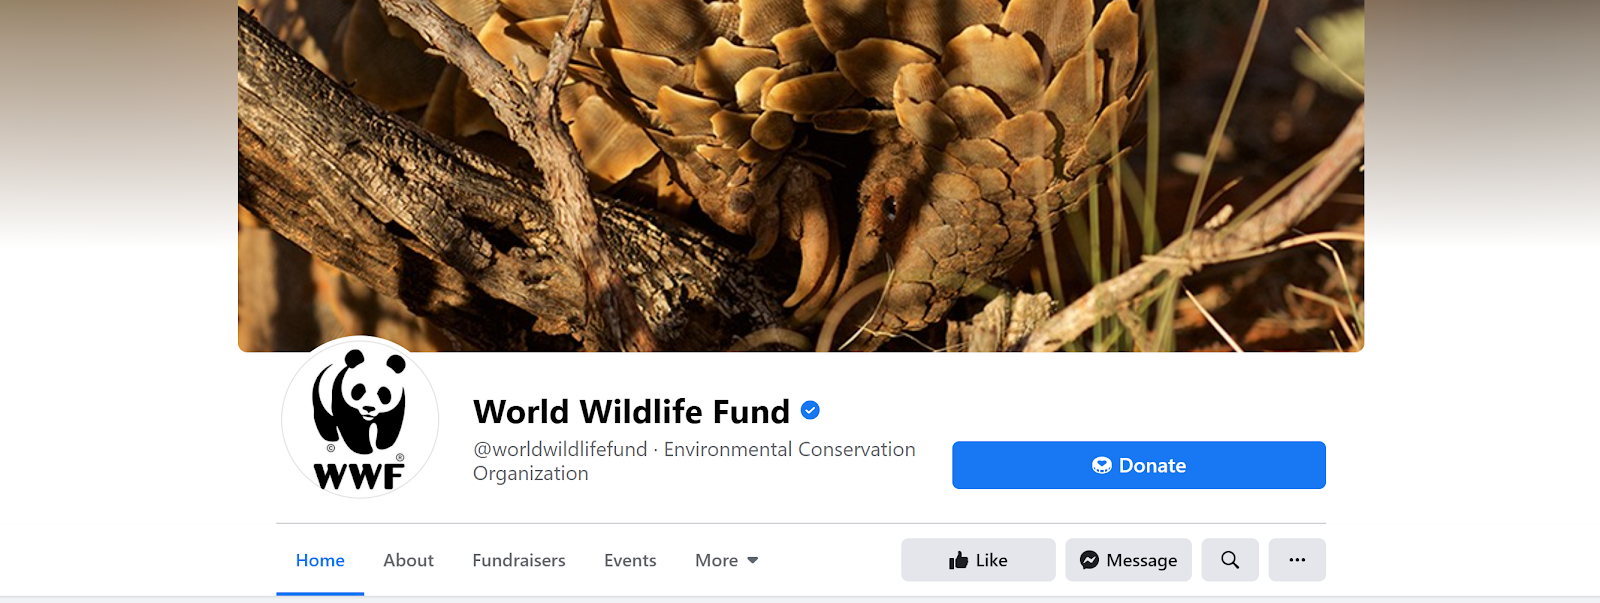 World Wildlife Fund Facebook page screenshot